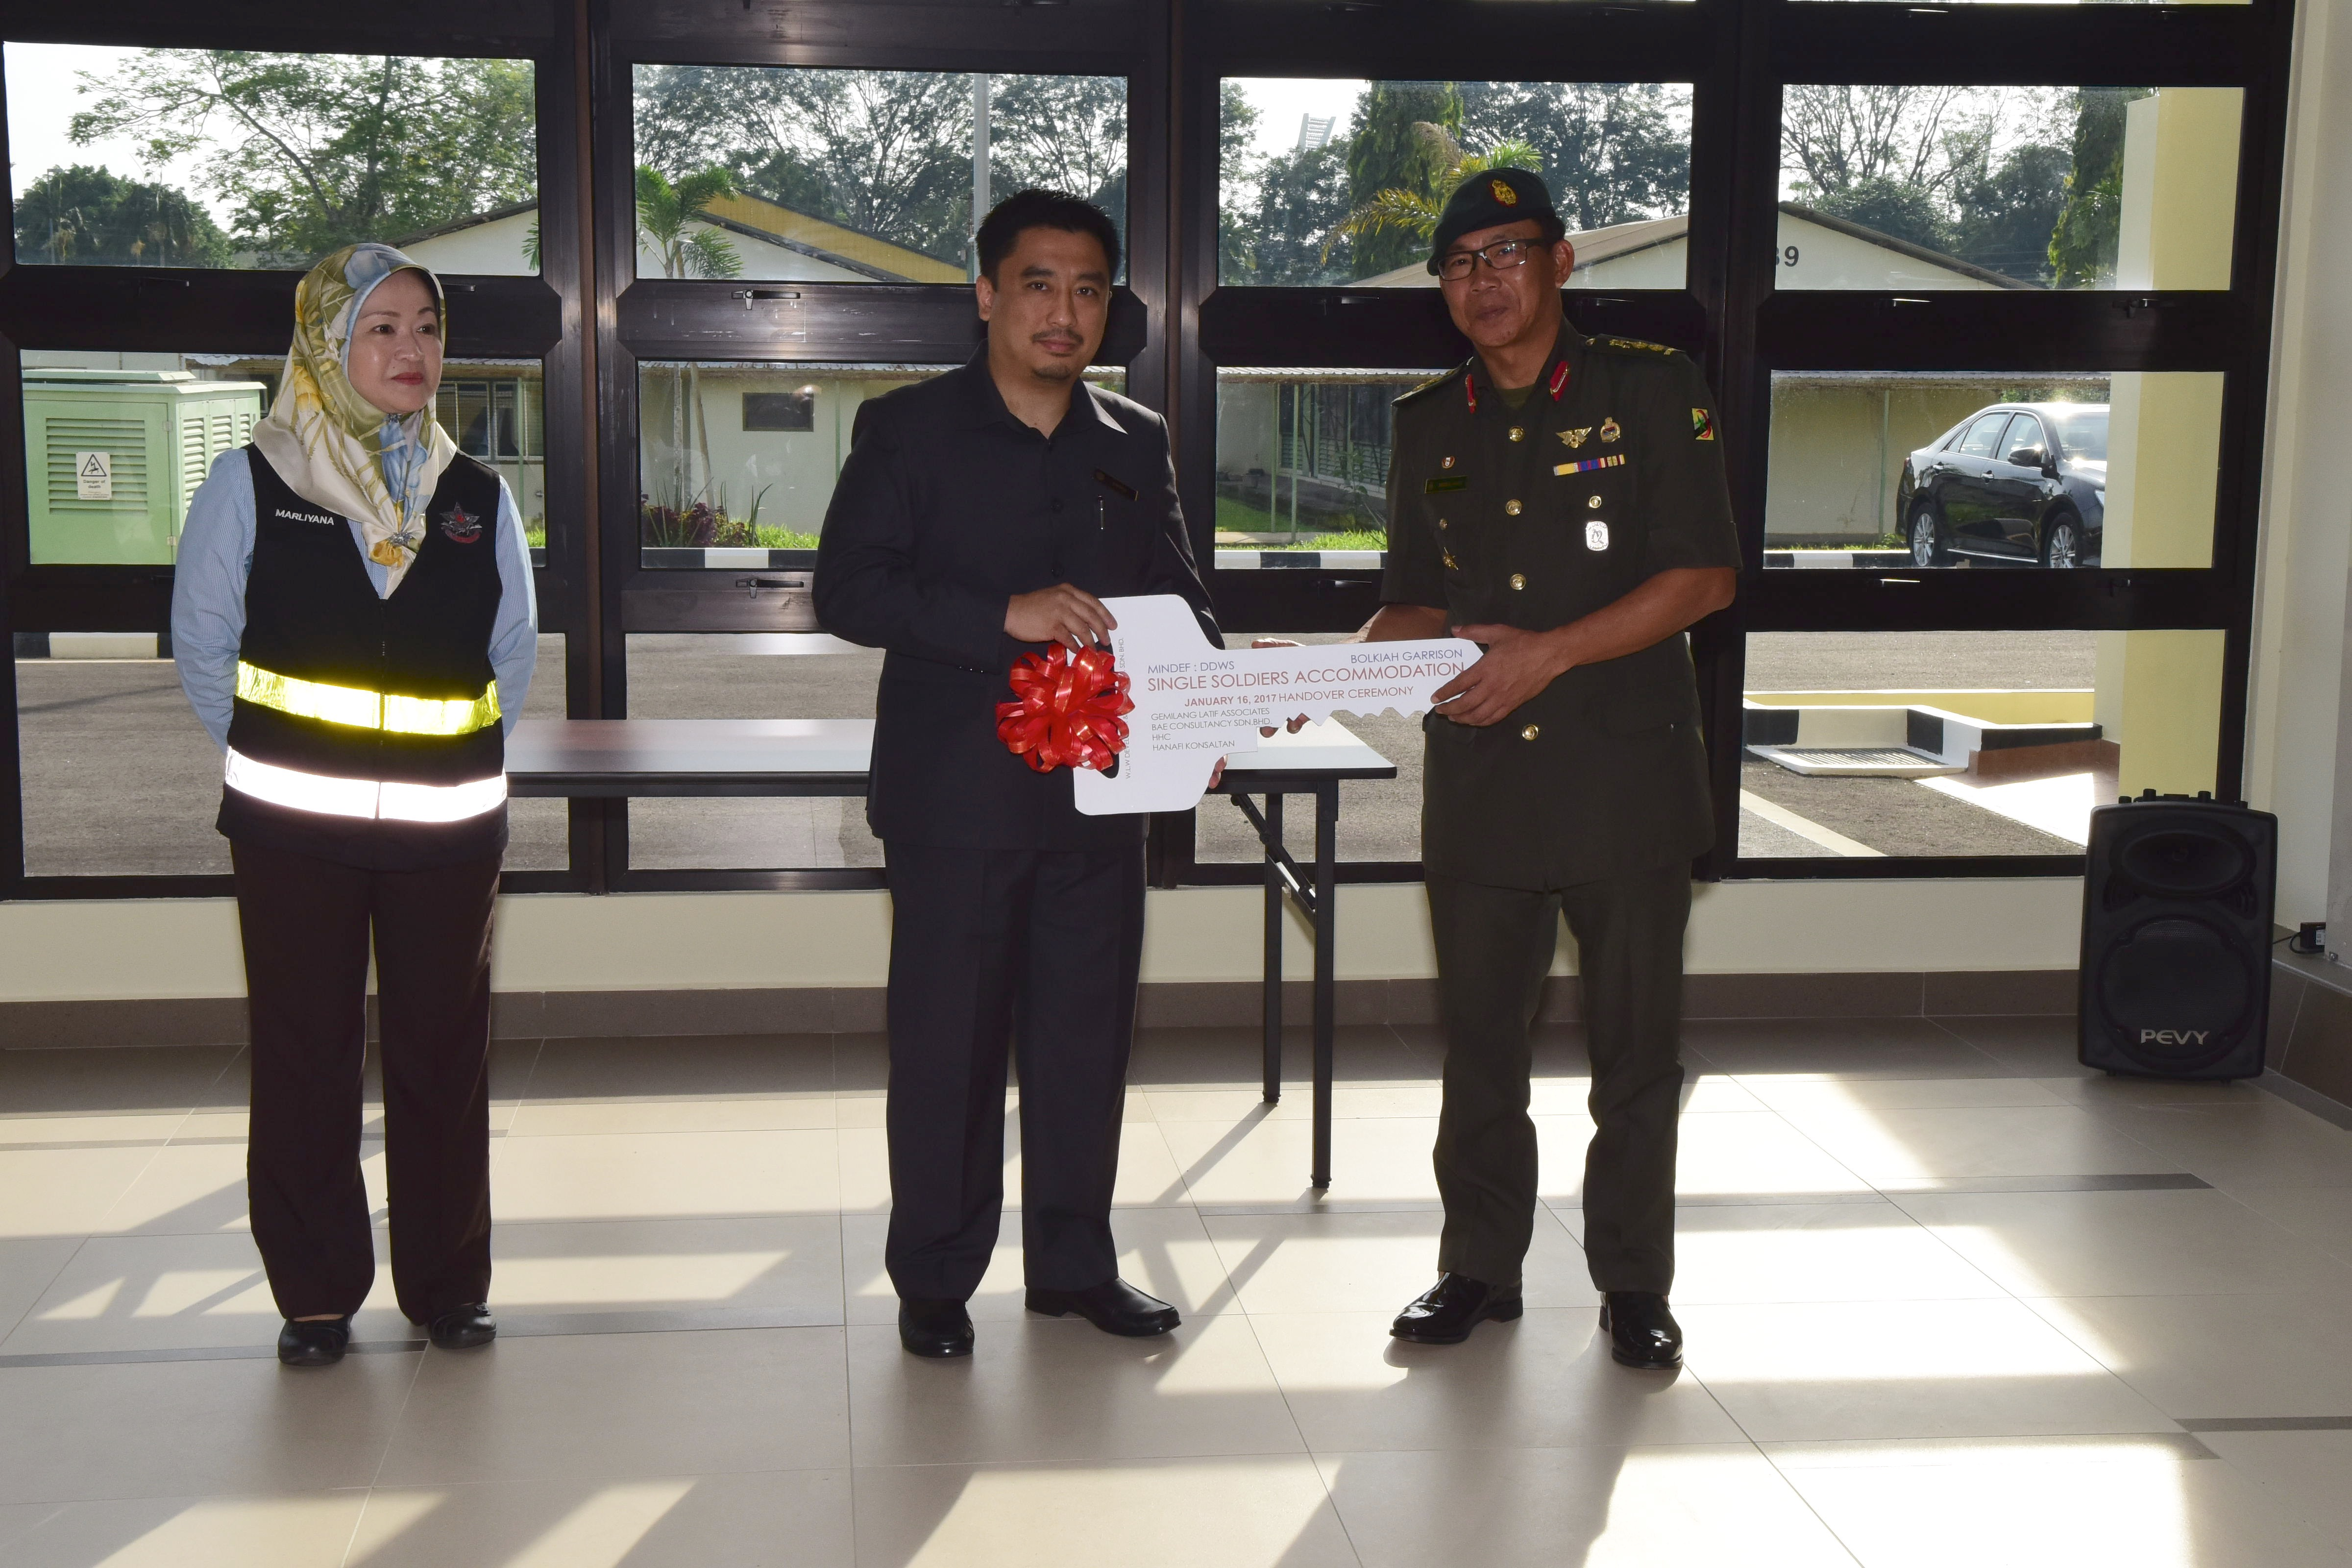 HANDOVER CEREMONY OF SINGLE SOLDIERS ACCOMMODATION, BOLKIAH GARRISON